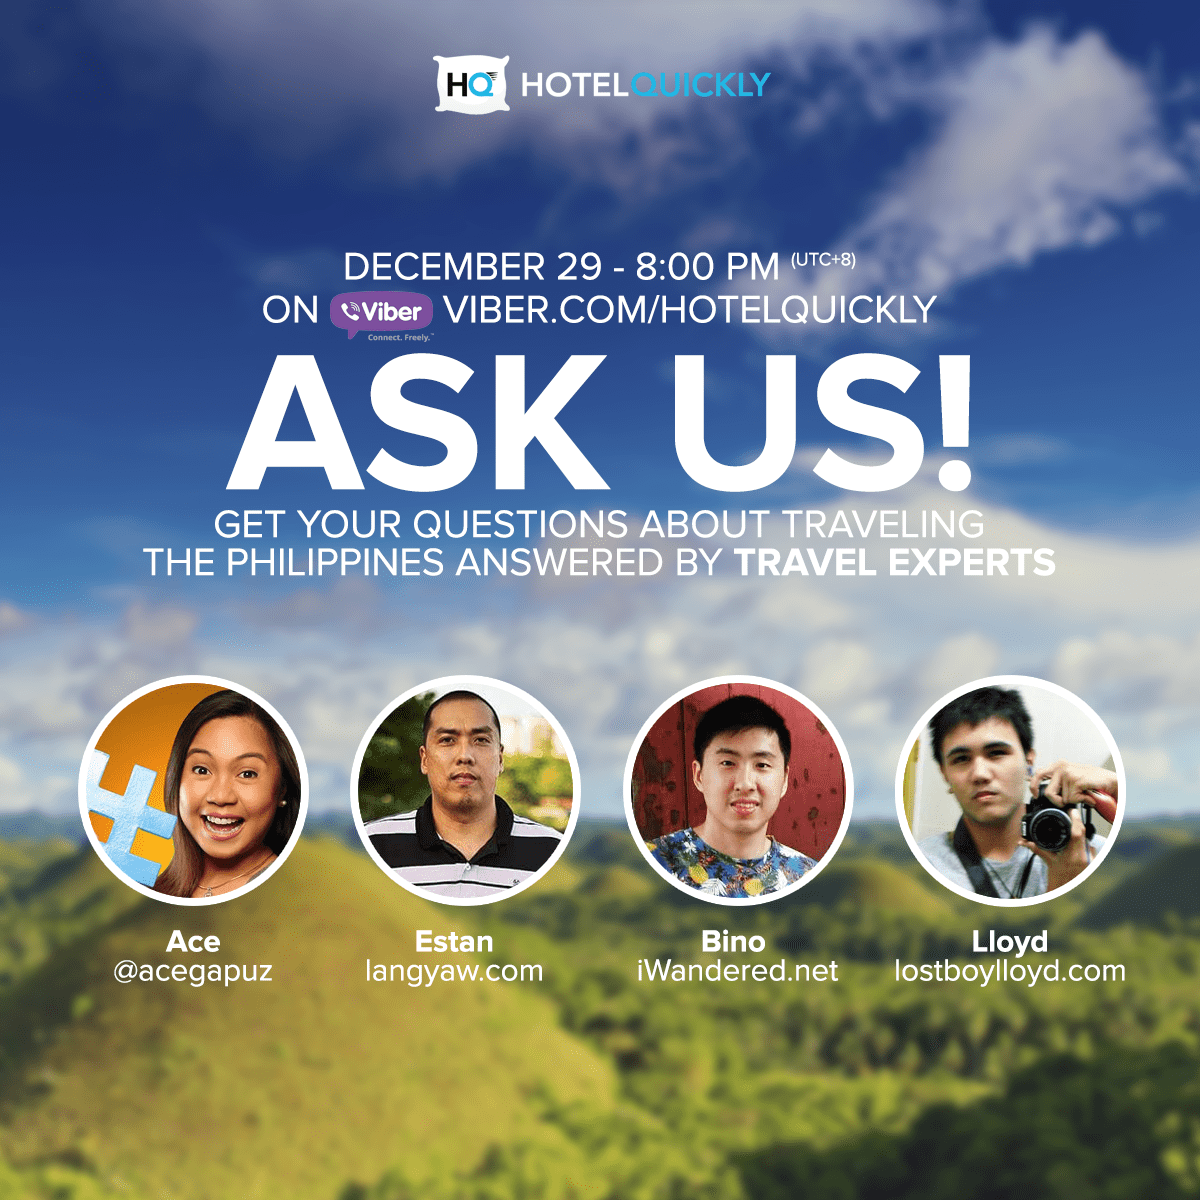 Ready with your questions in traveling the Philippines?